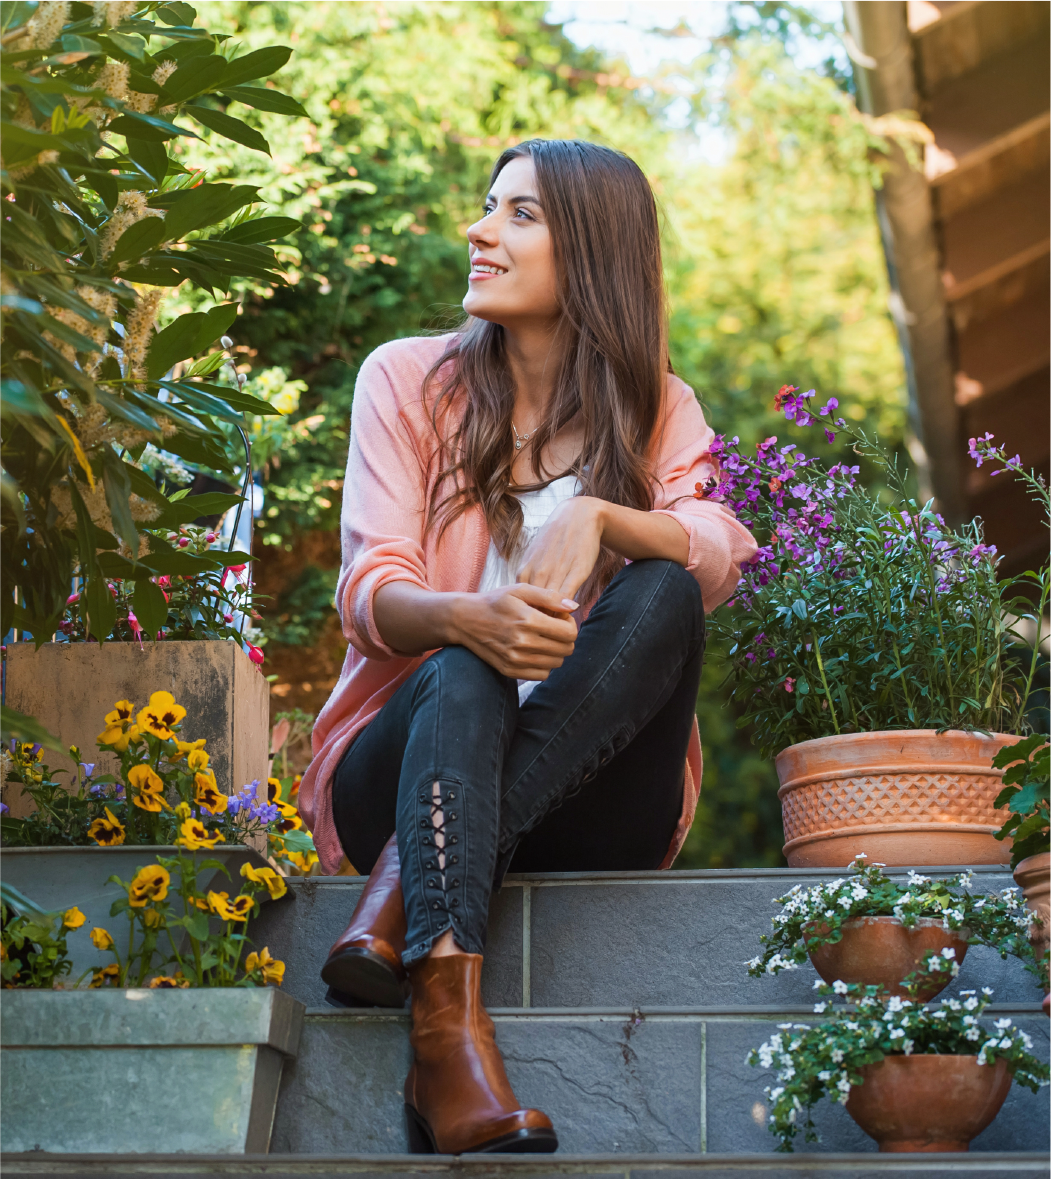 Woman wearing pink shirt, brown boots, and dark leggings looking to her right surrounded by beautiful purple, yellow, and white potted plants